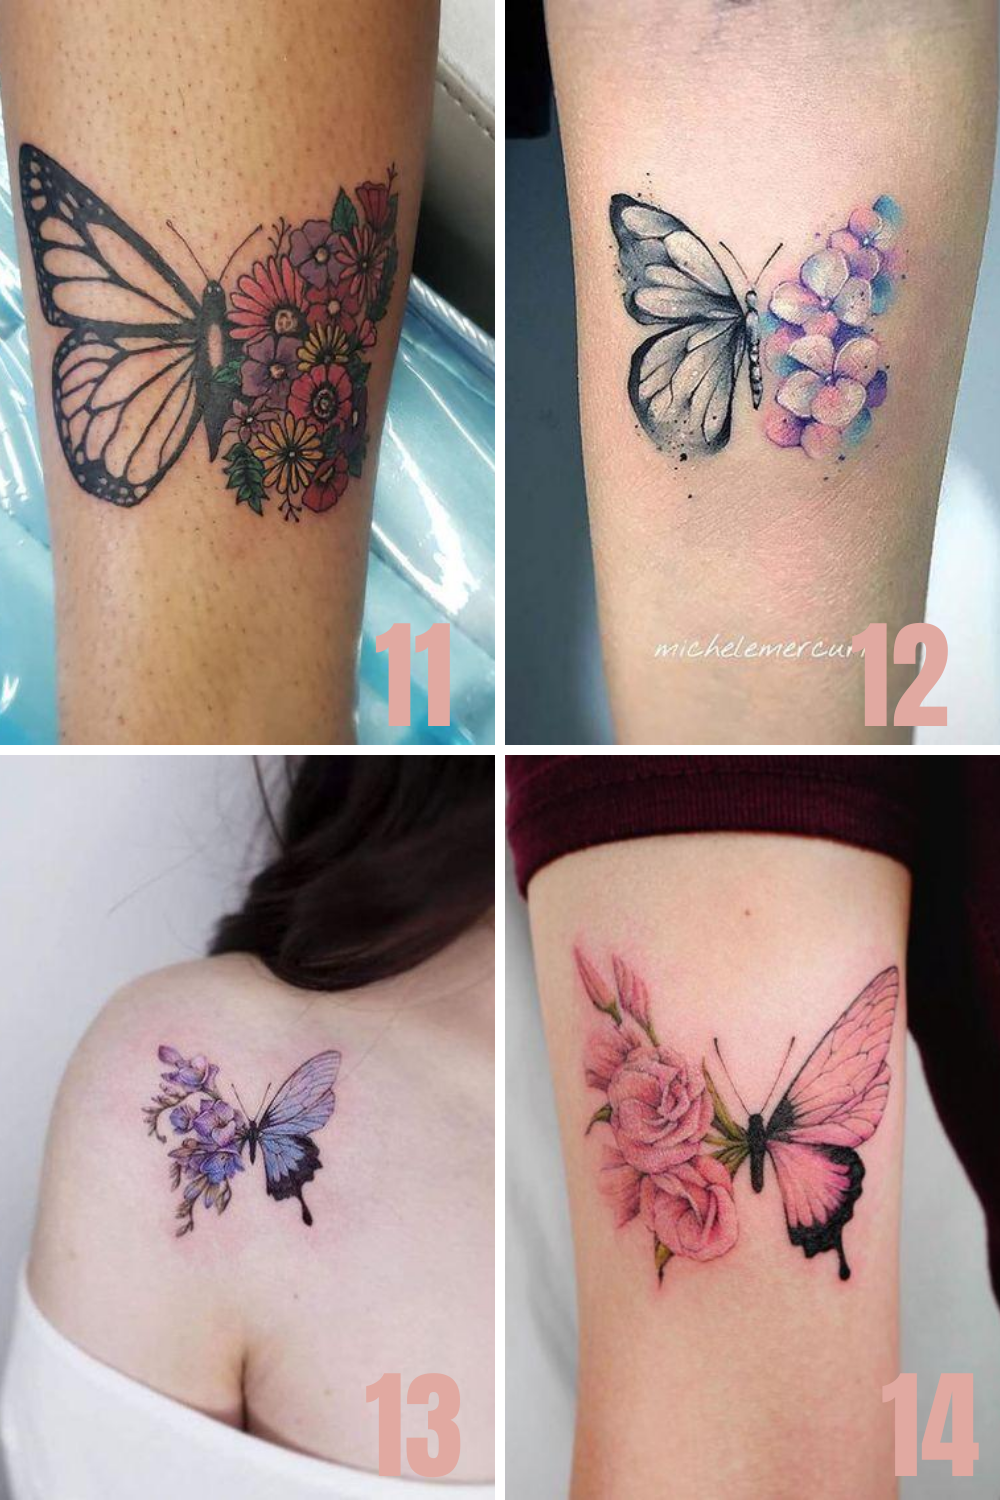 Butterfly And Flower Tattoos : butterfly, flower, tattoos, Beautiful, Butterfly, Flower, Tattoo, Ideas, Tattooglee, Tattoos, Women,, Daughters